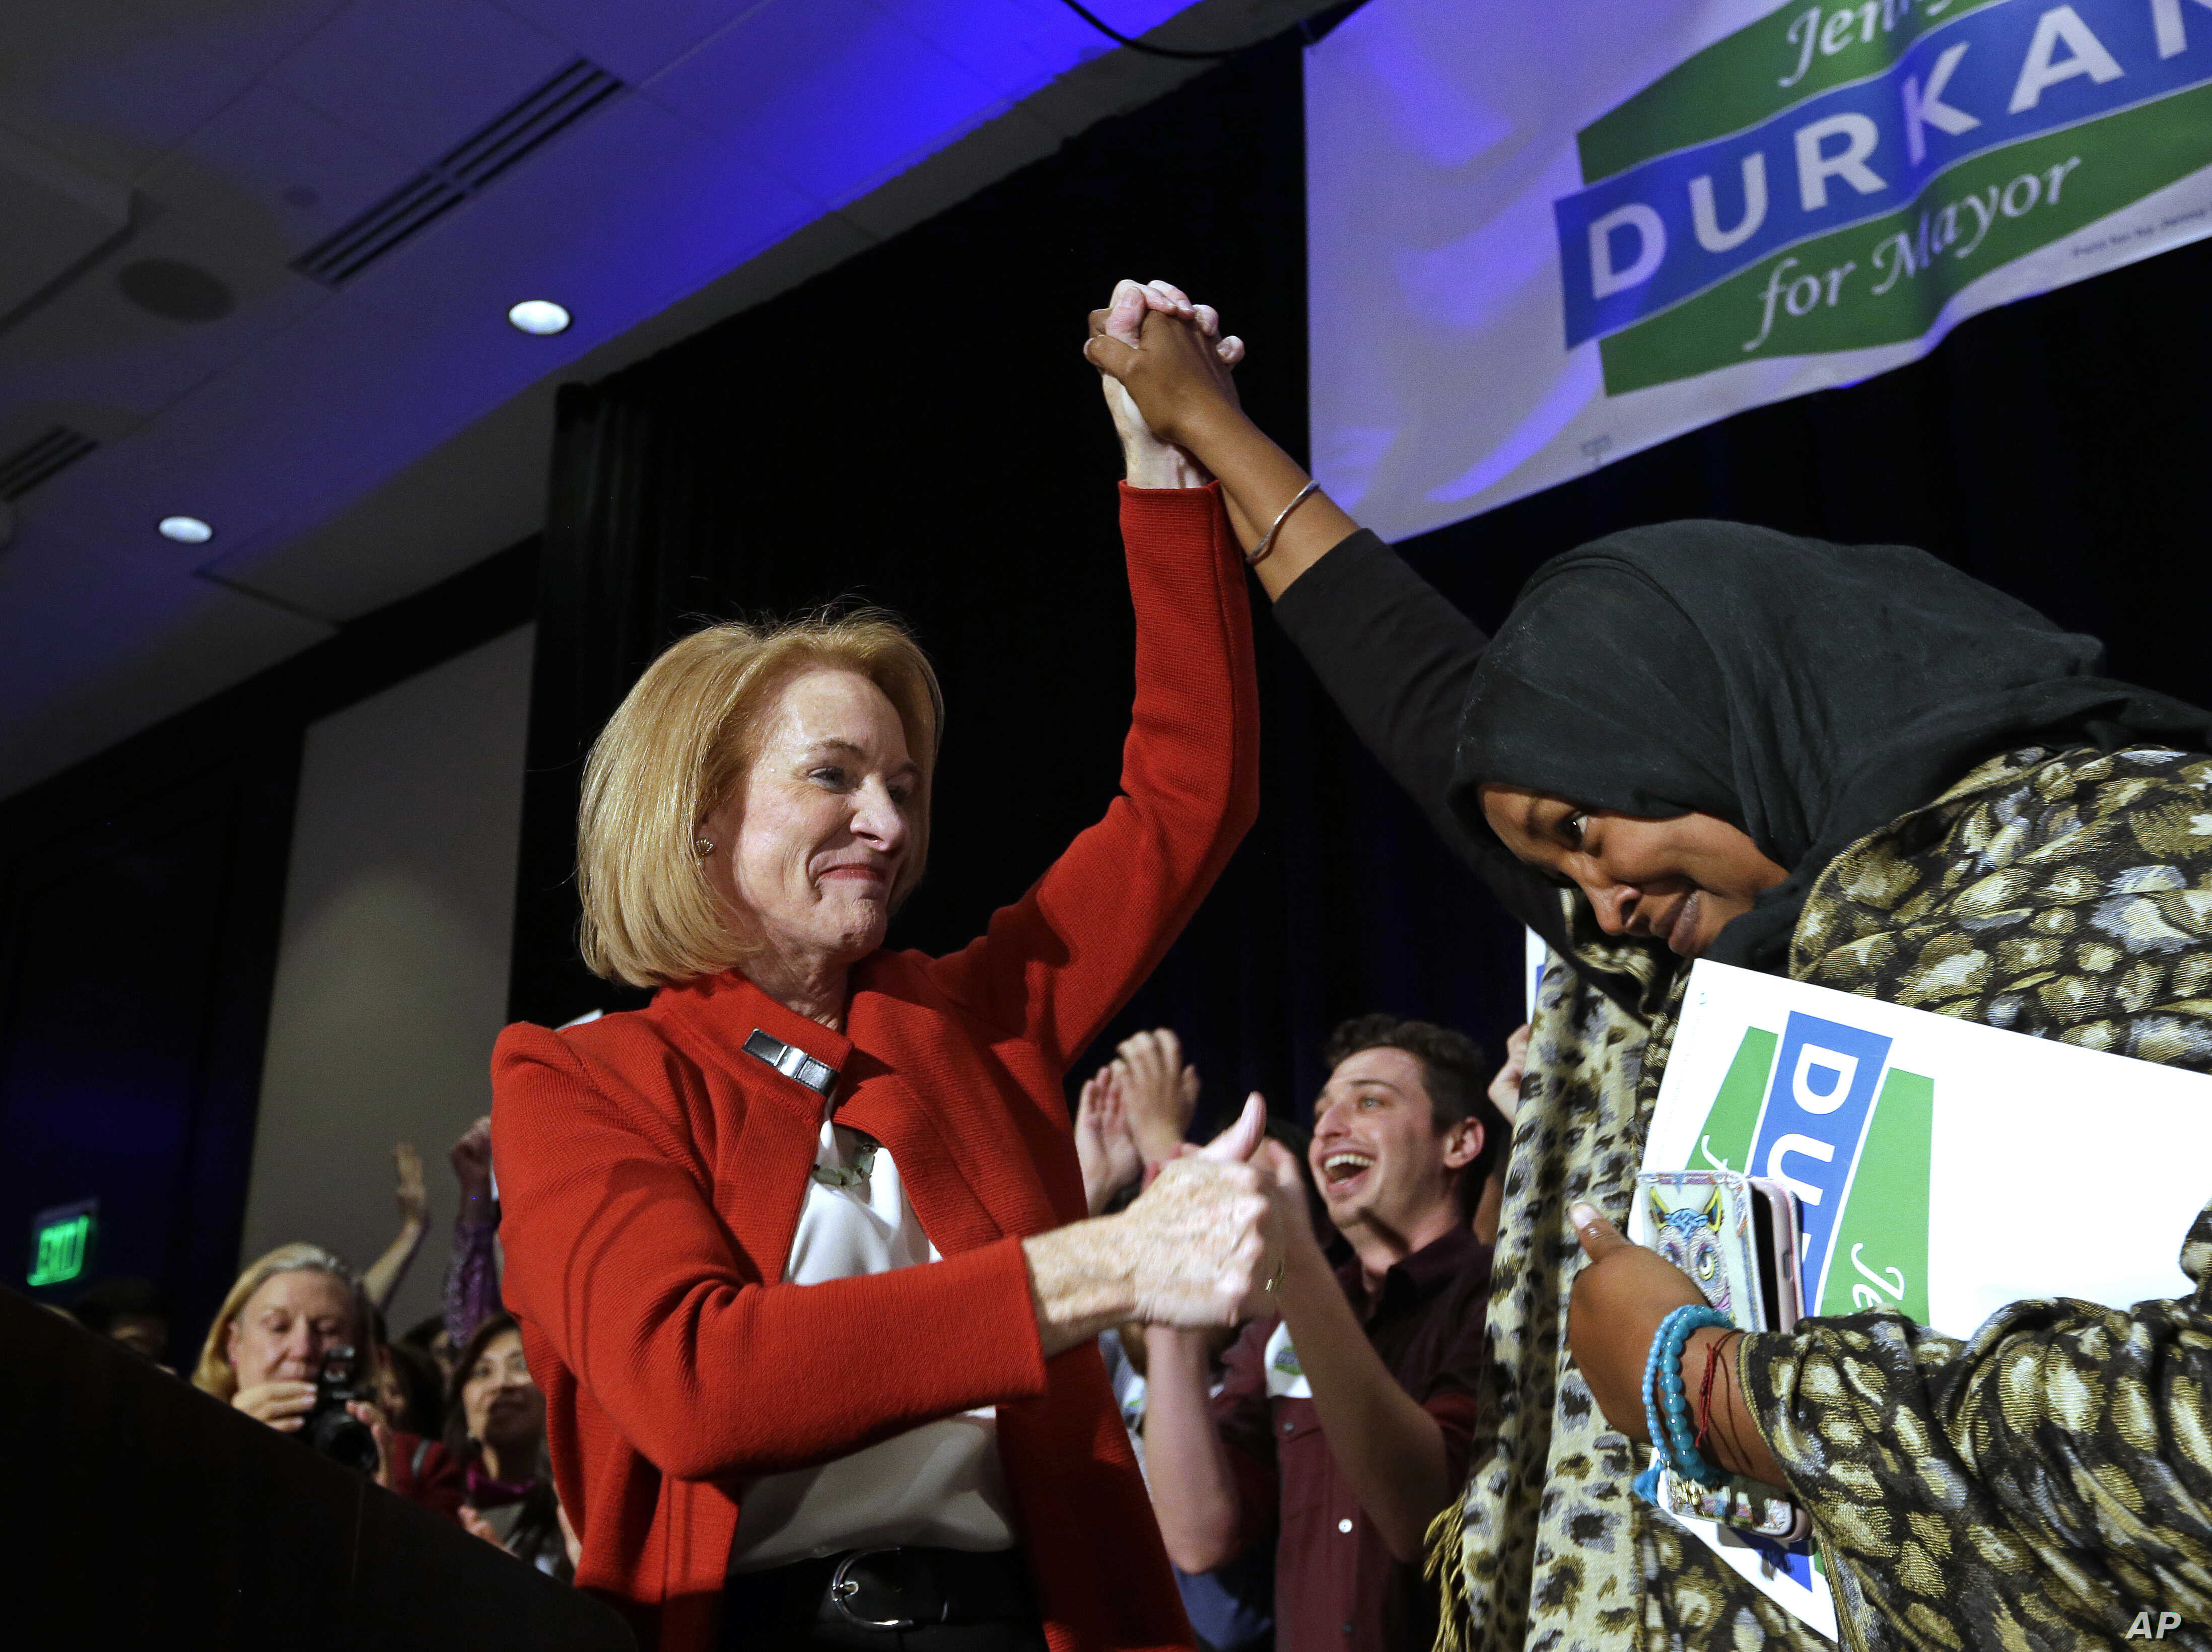 Jenny Durkan gives a thumbs-up to a supporter while taking the stage at an election night party in Seattle, Nov. 7, 2017. Durkan was elected as the city's first lesbian mayor.